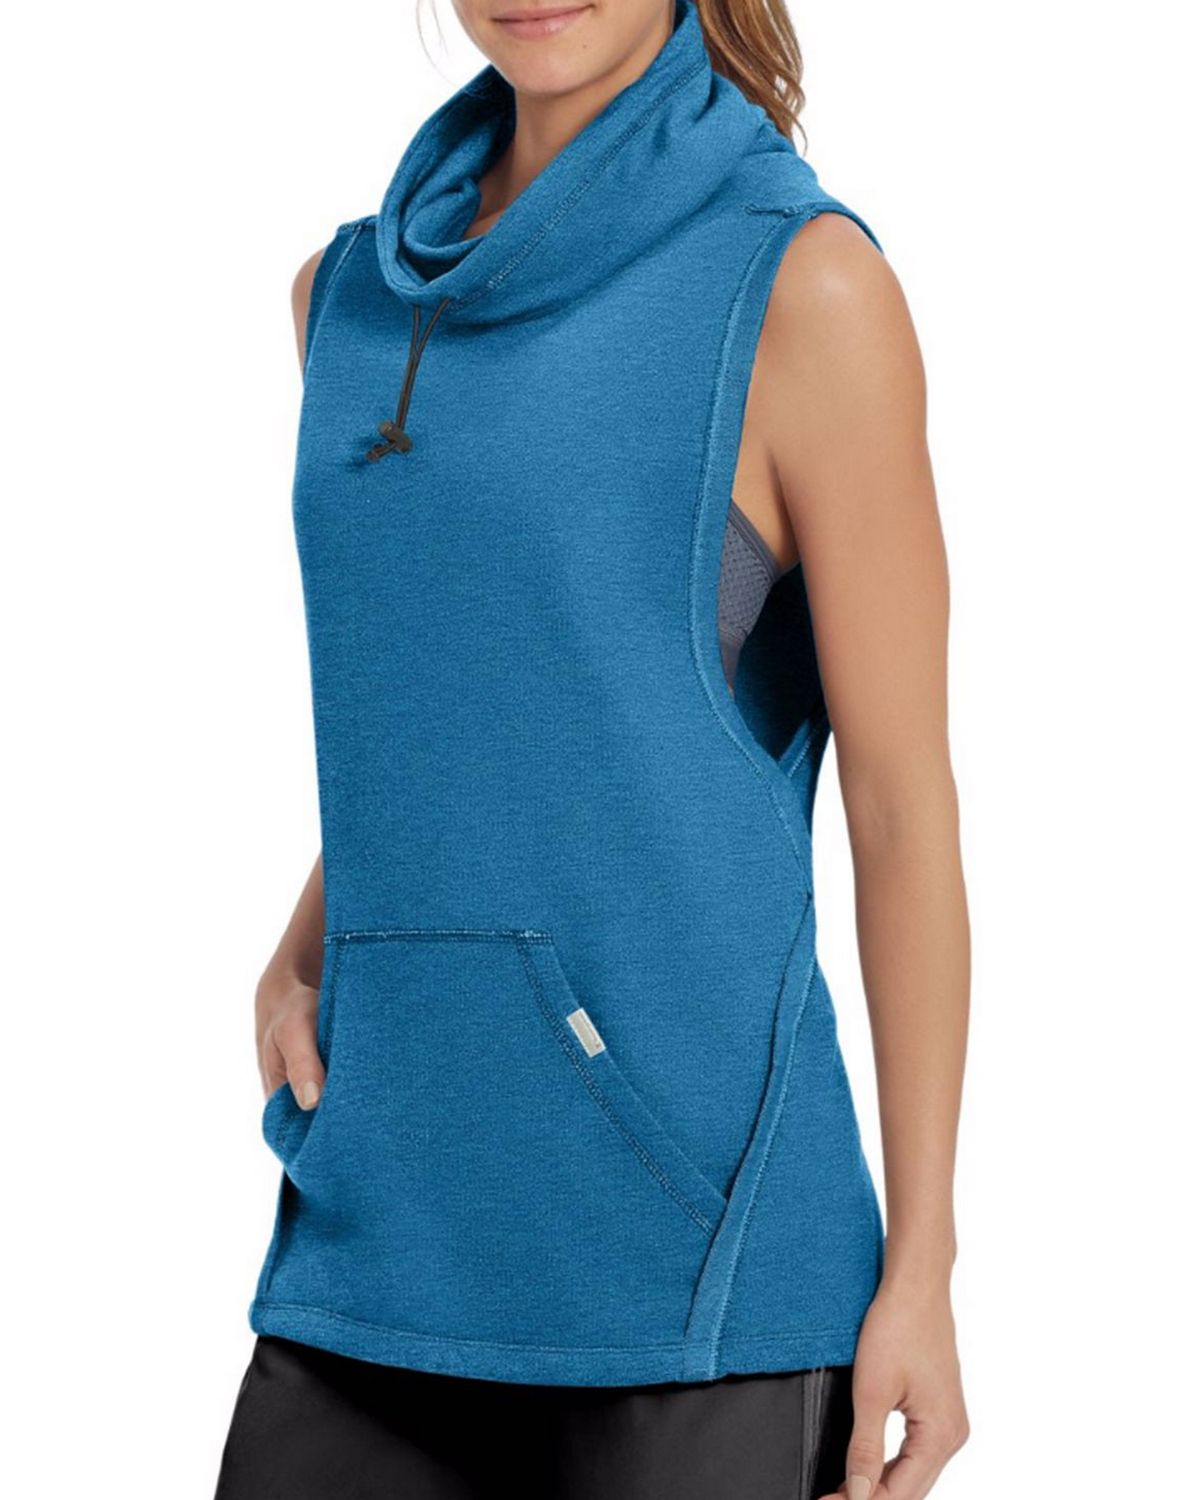 Champion W50067 Womens Sleeveless Pullover - Oxford Grey Heather - M W50067